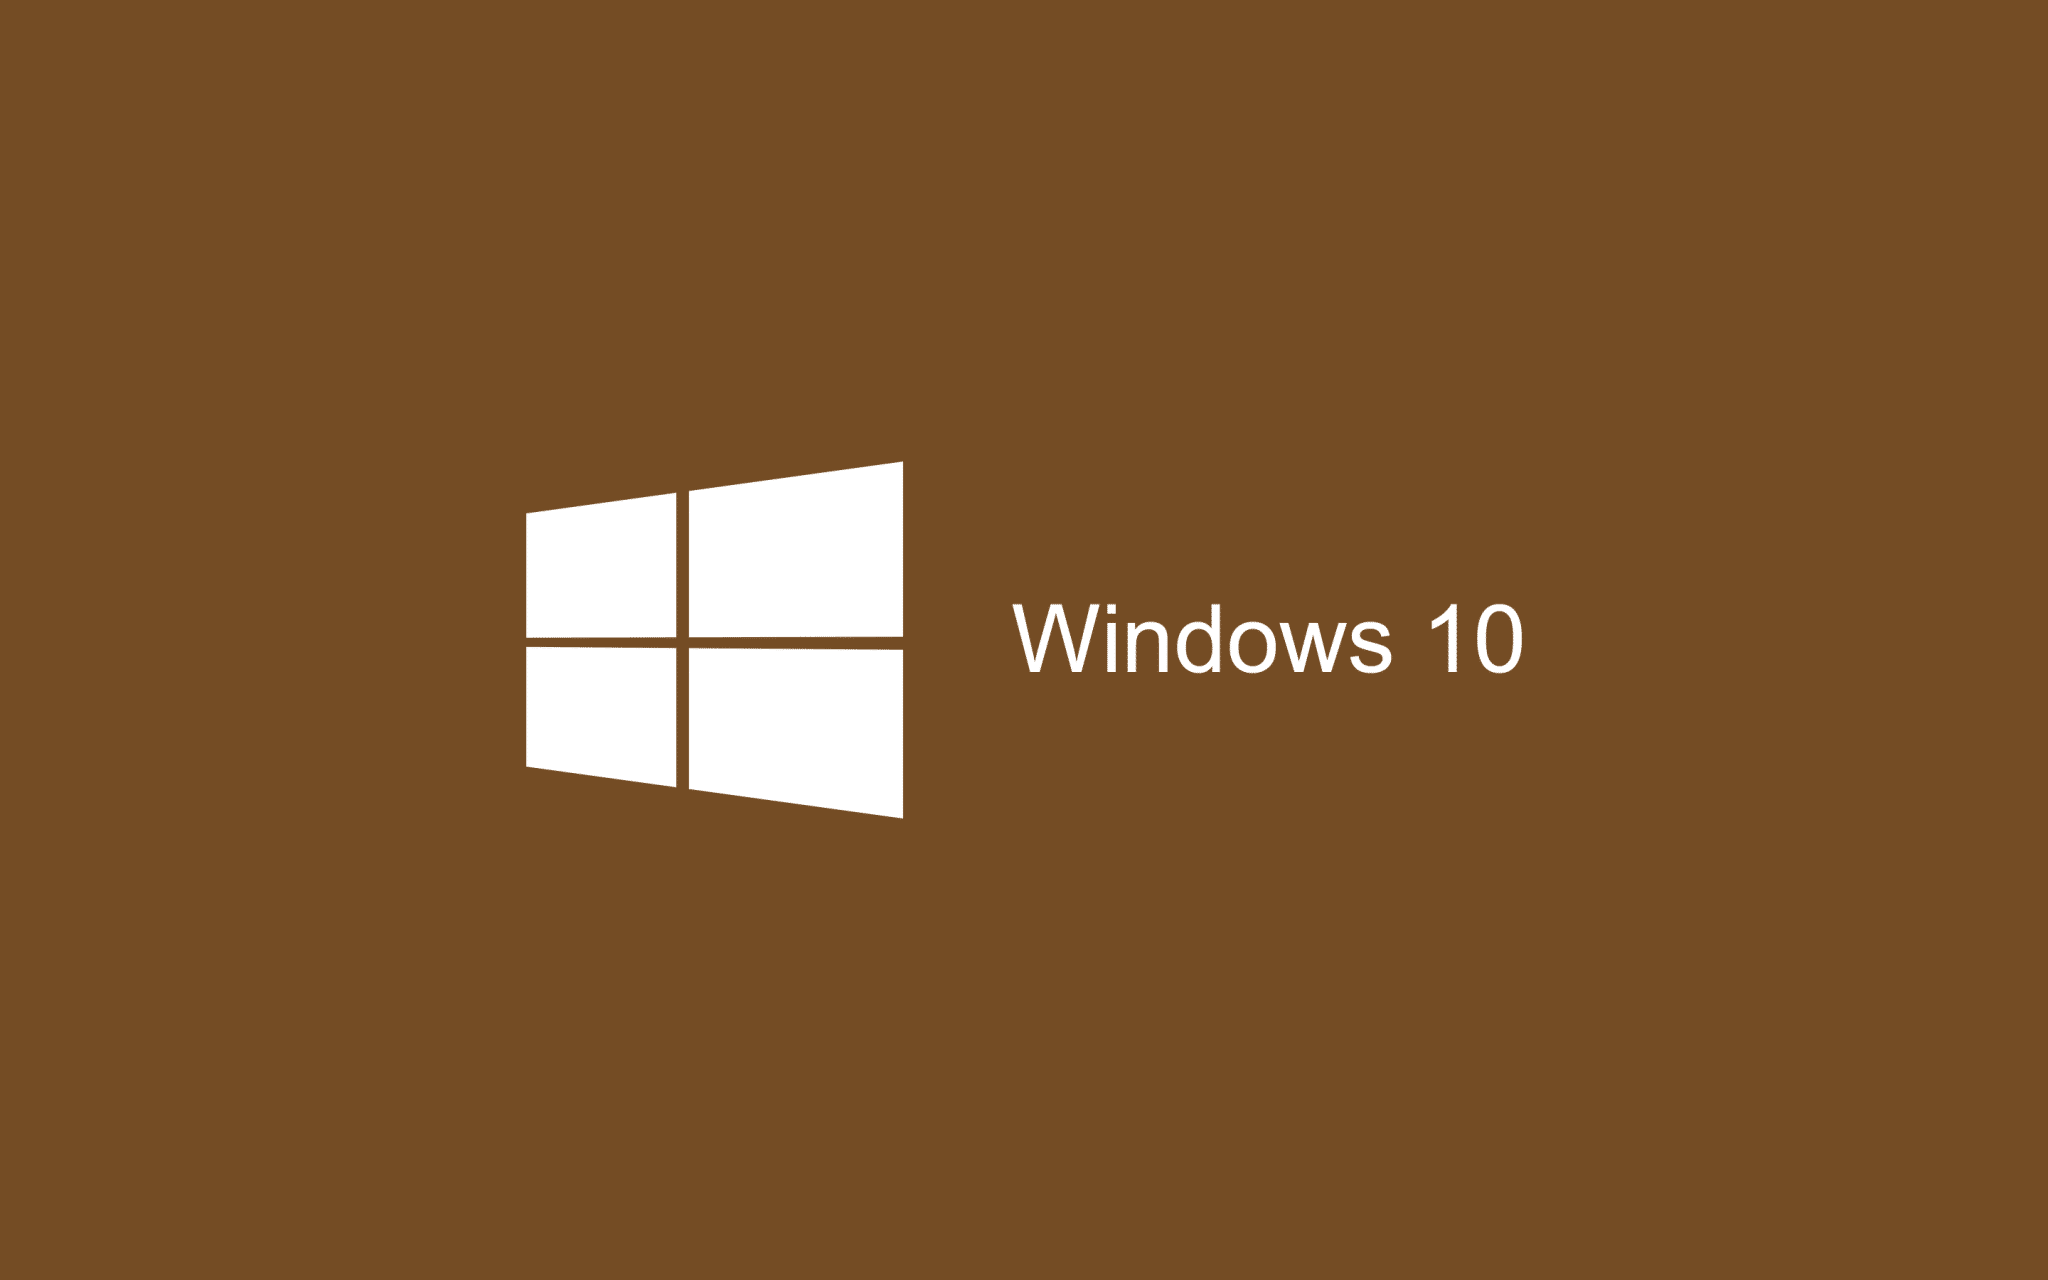 Brown Wallpaper Windows 10 HD 2880x1800